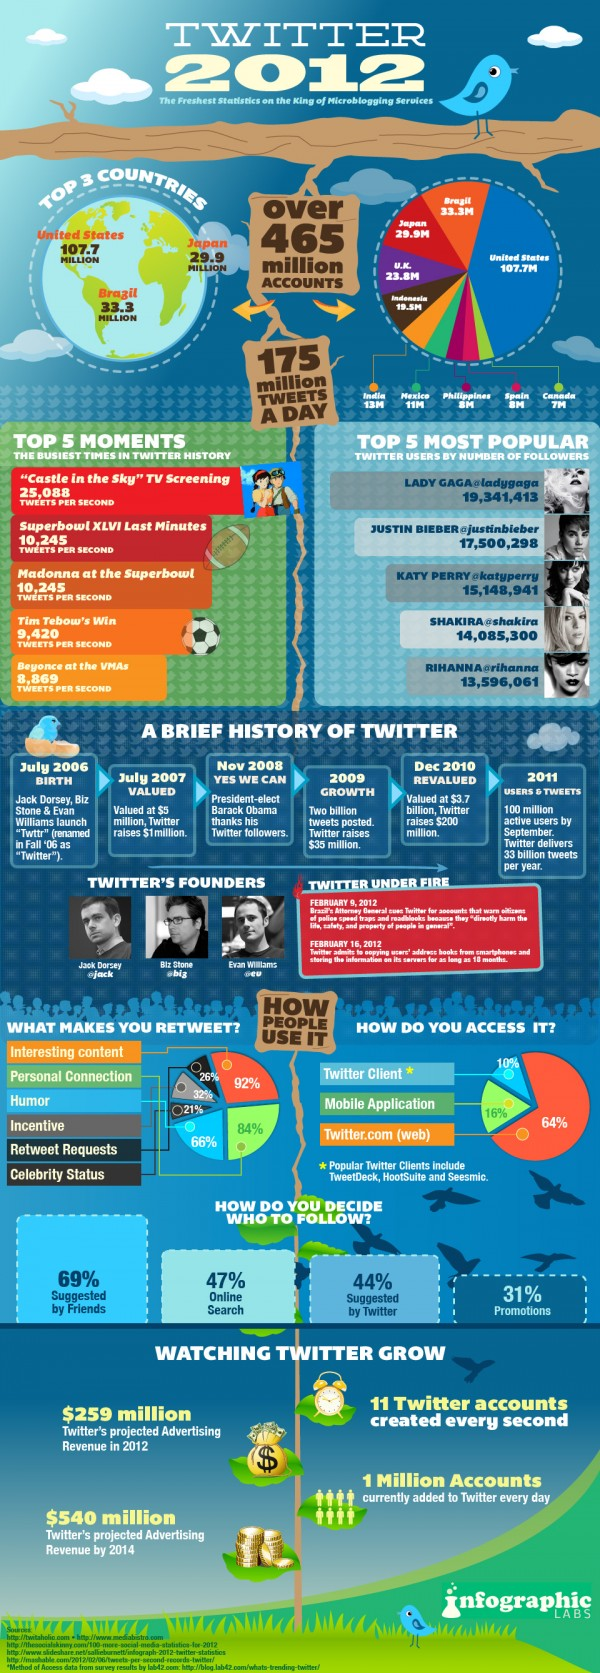 A Visual Look at Twitter in 2012